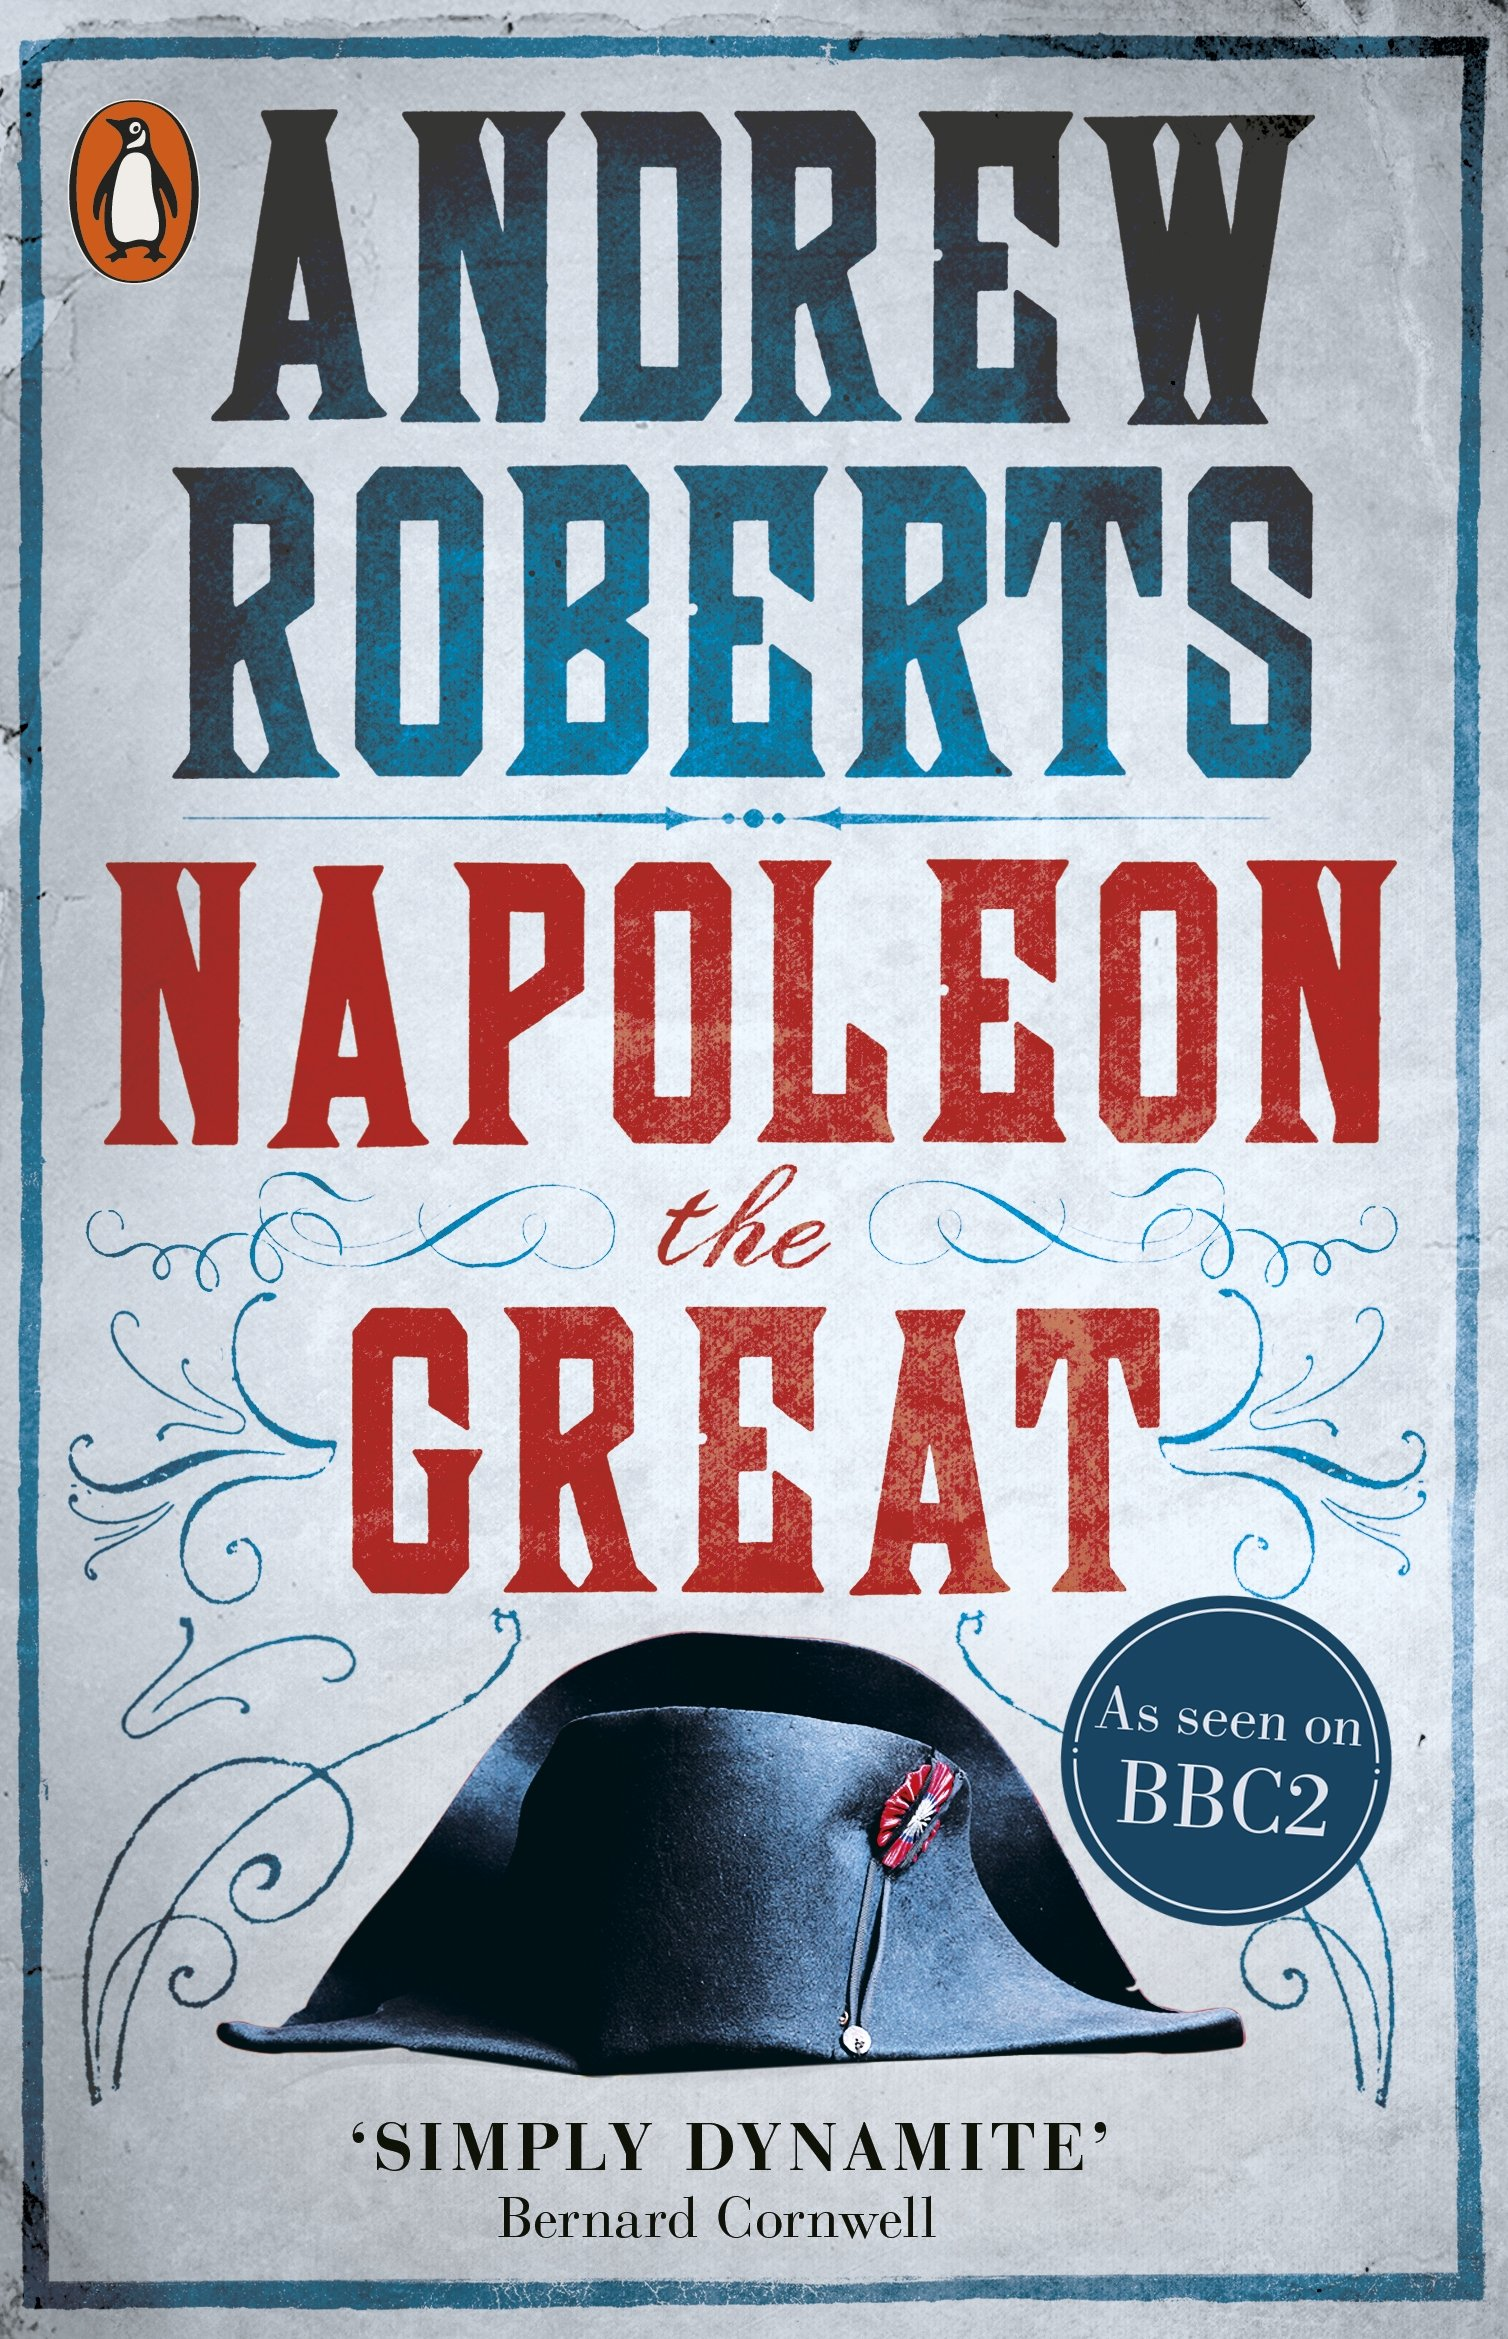 napoleon the great andrew roberts 9780141032016 books ca